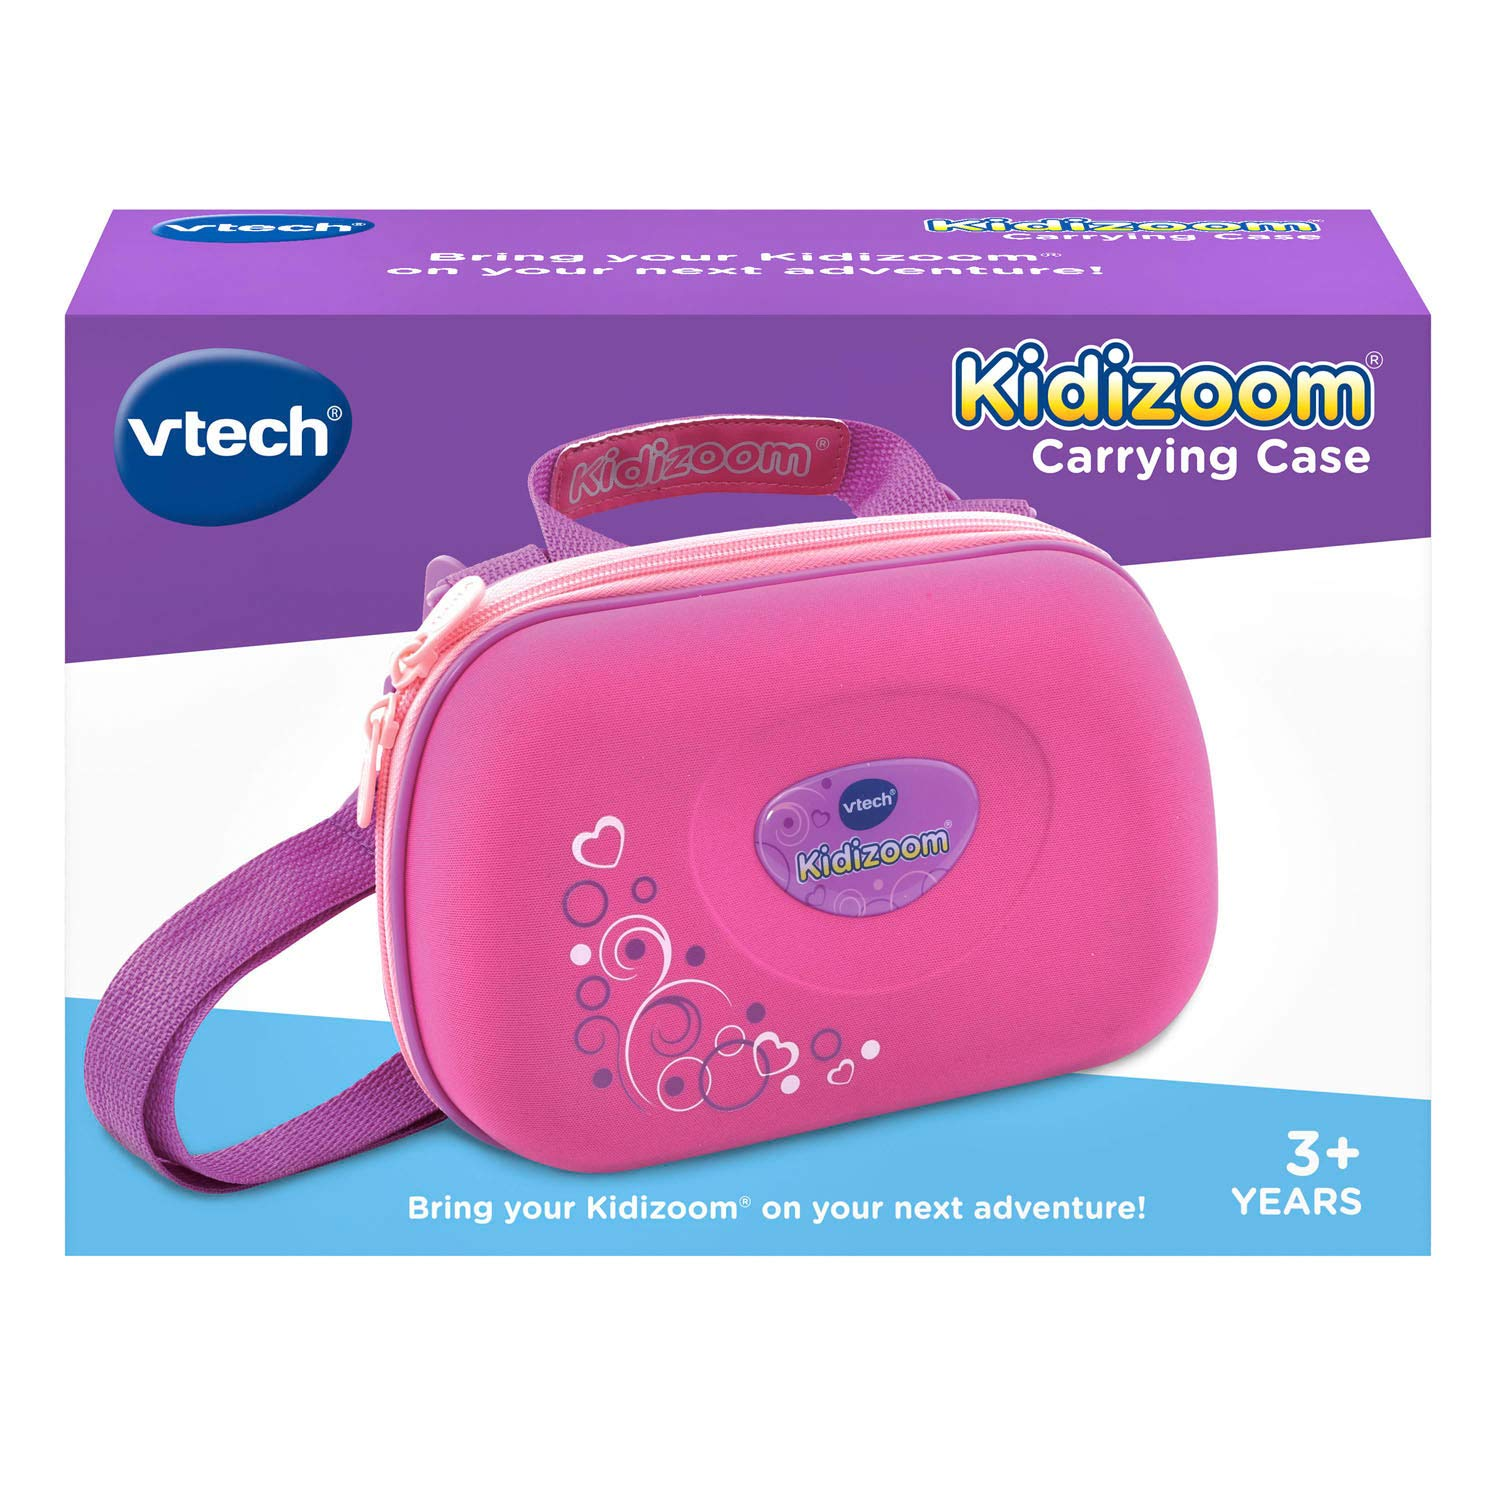 VTech Kidizoom Carrying Case, Pink by VTech (Image #6)